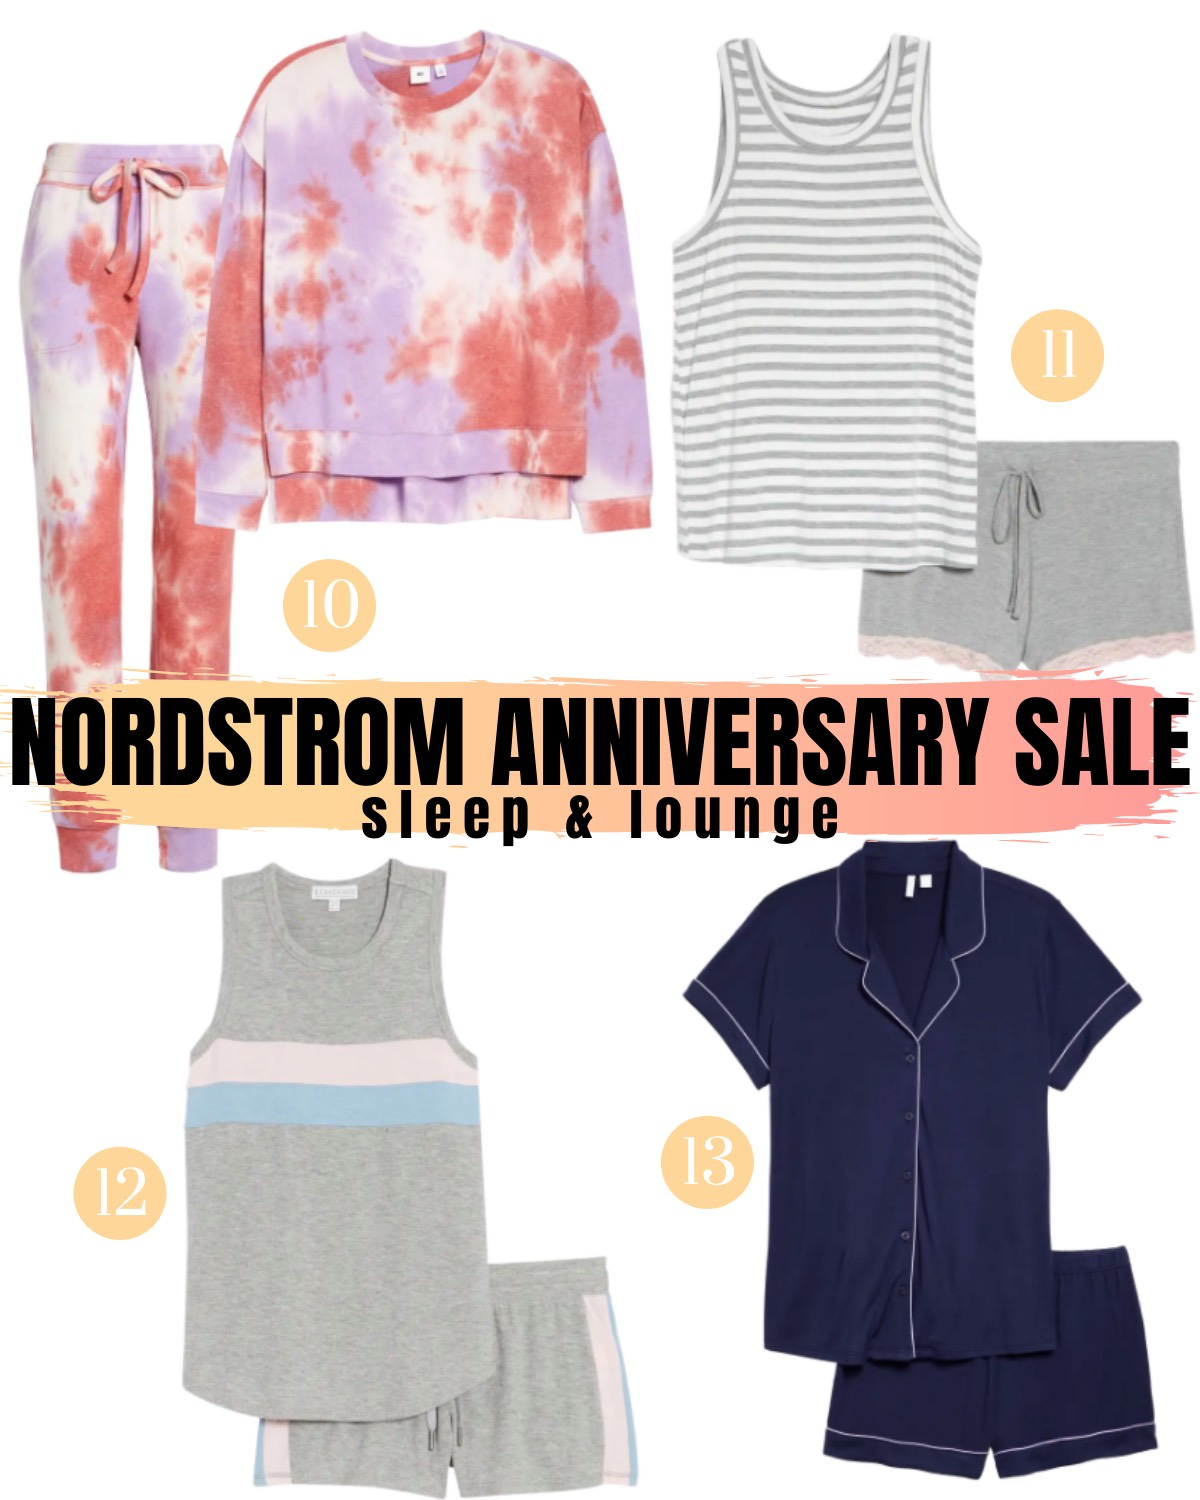 Nordstrom Anniversary Sale 2020 sleep and lounge